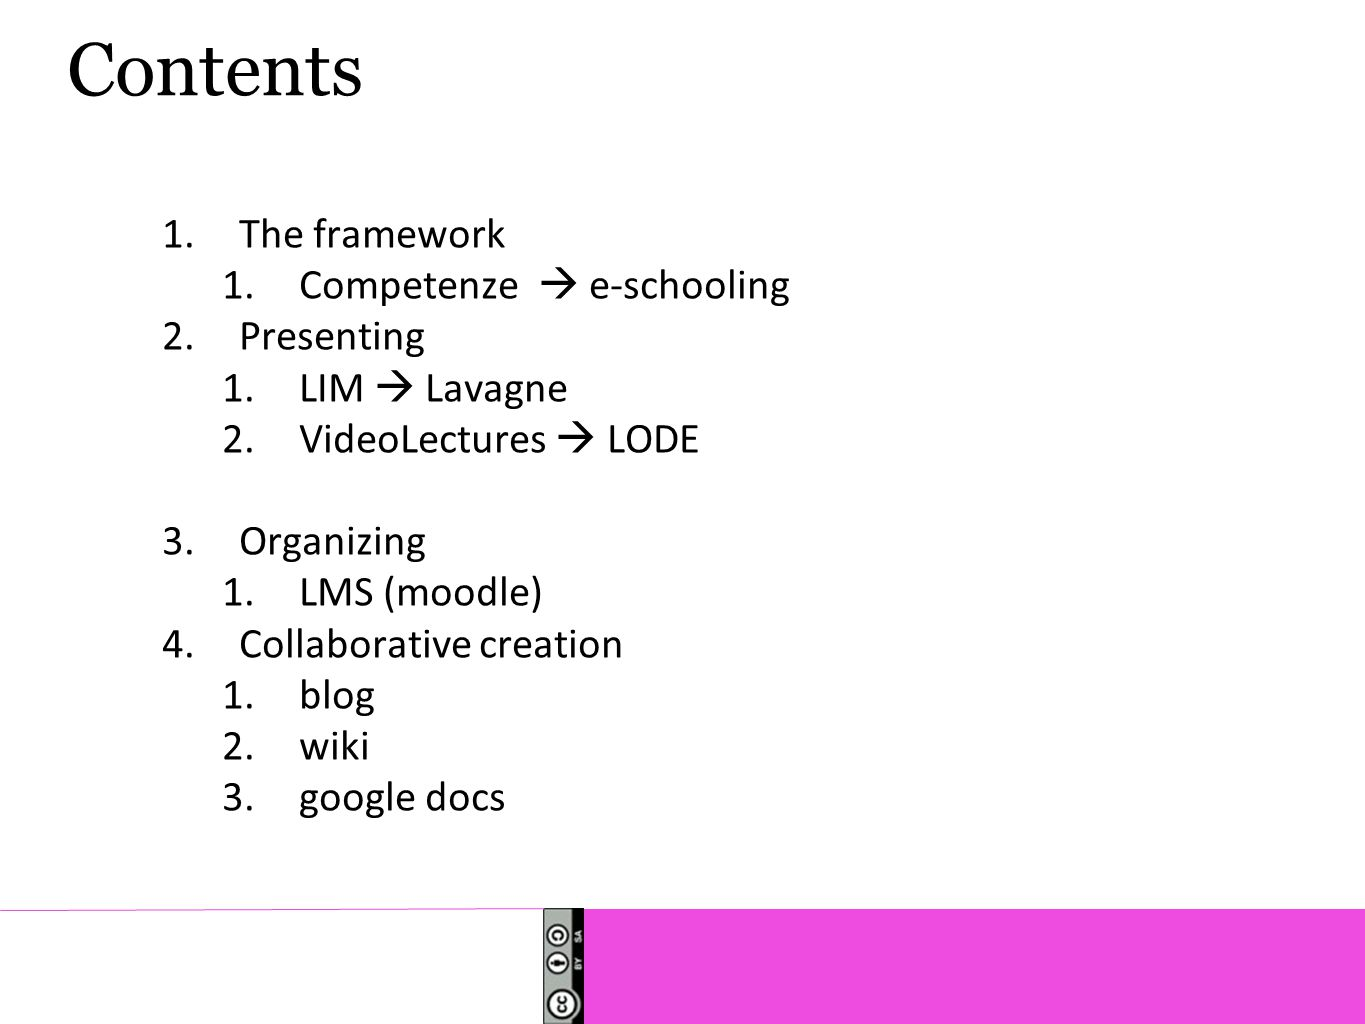 Contents 1.The framework 1.Competenze  e-schooling 2.Presenting 1.LIM  Lavagne 2.VideoLectures  LODE 3.Organizing 1.LMS (moodle) 4.Collaborative cr